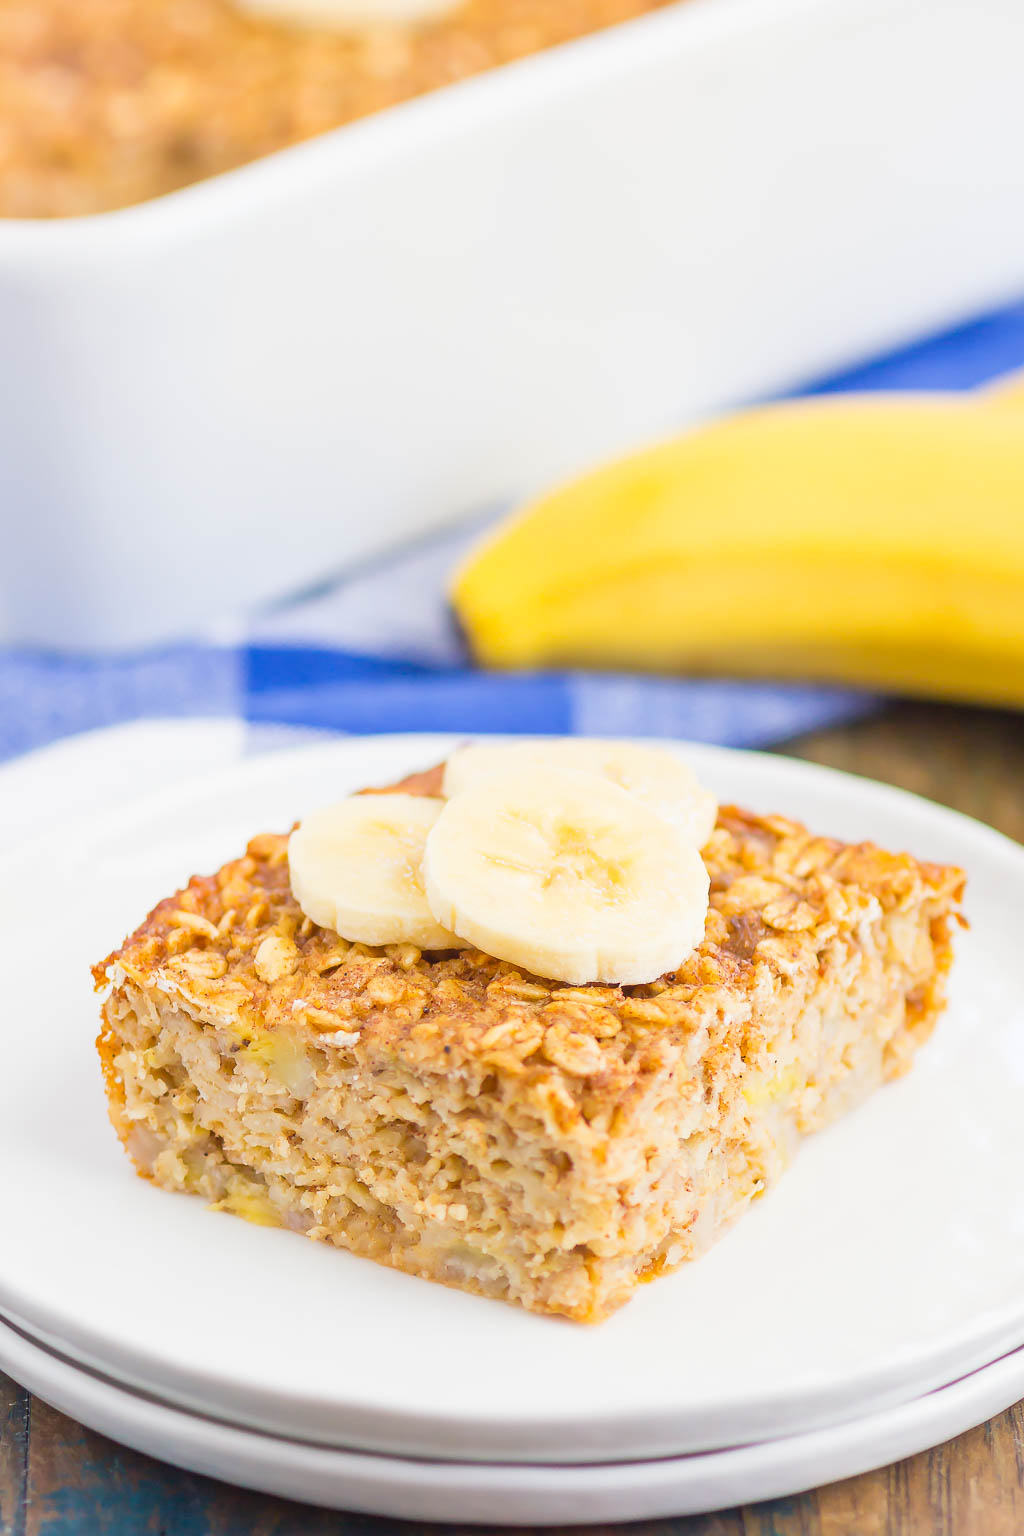 slice of banana baked oatmeal garnished with banana slices on white plate